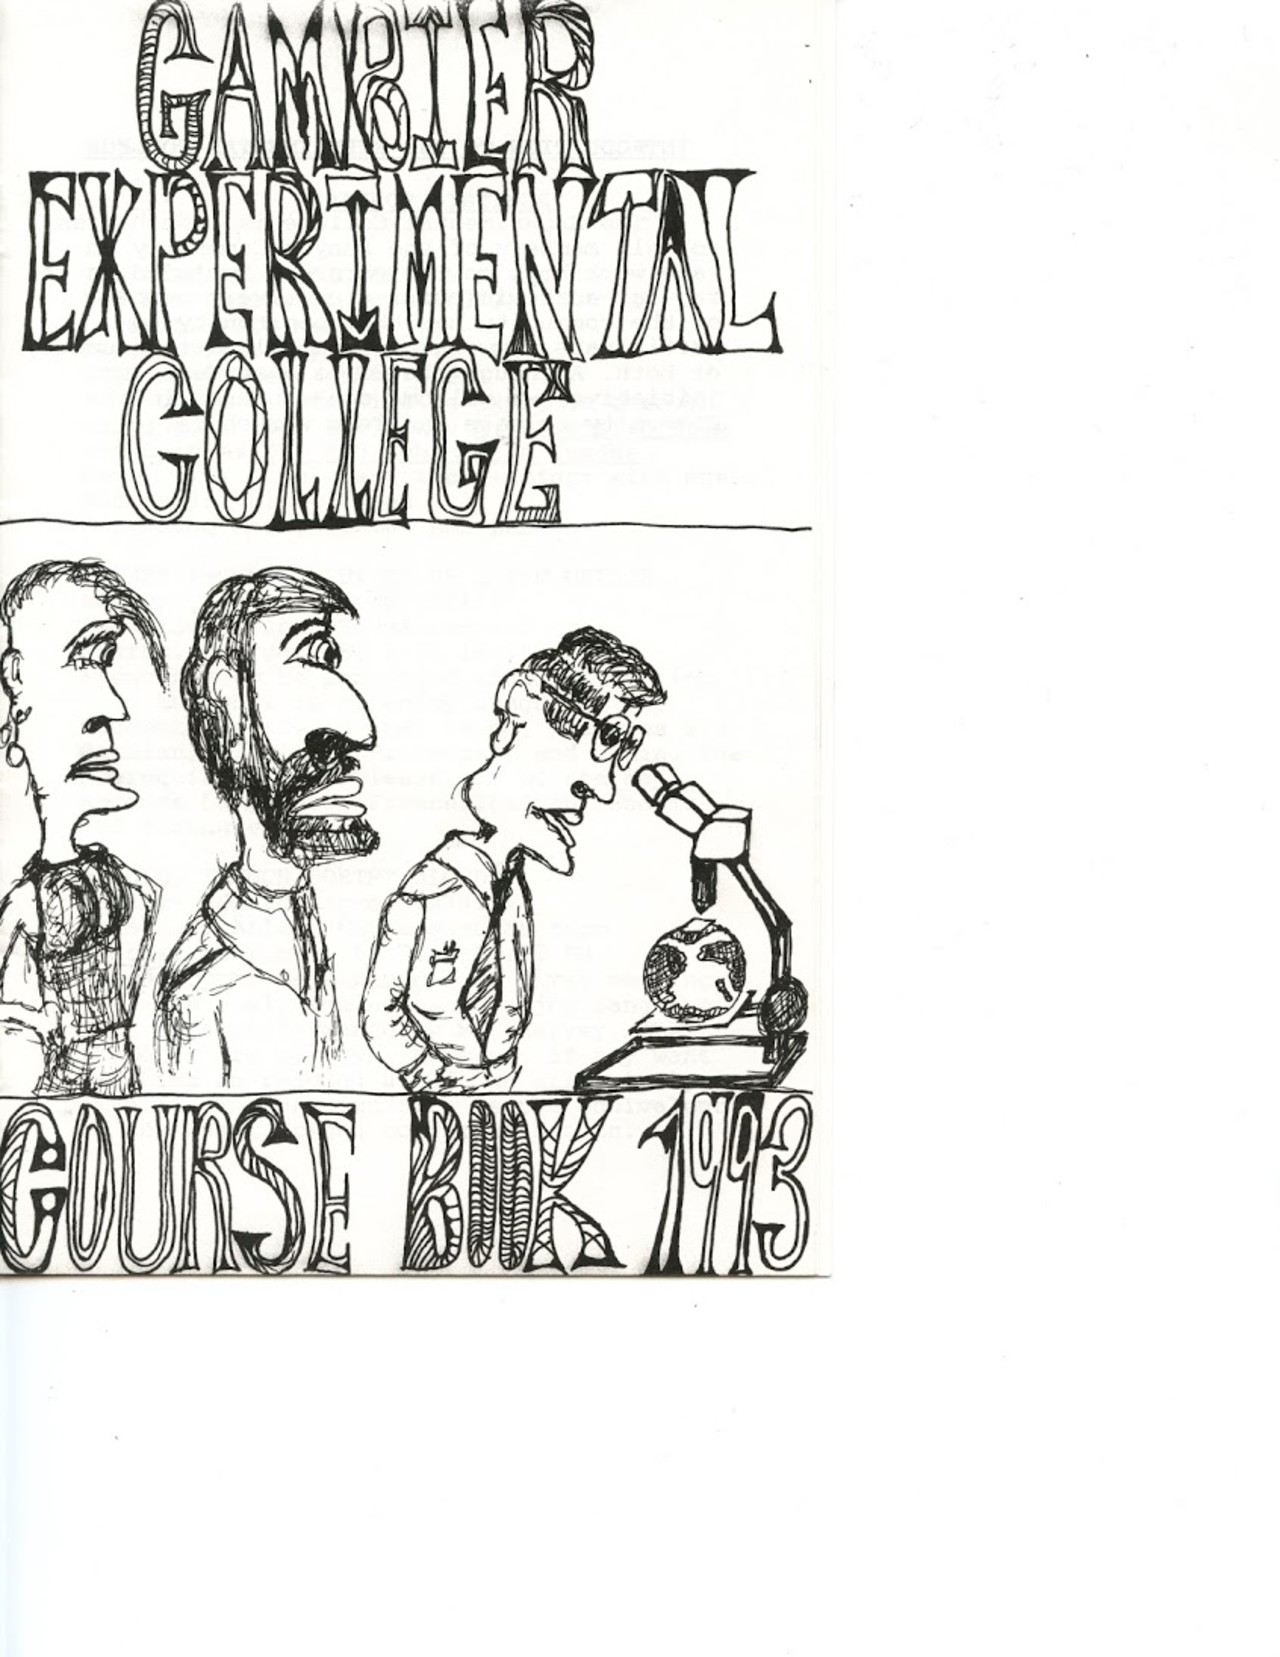 The Gambier Experimental College – The Collegian Magazine